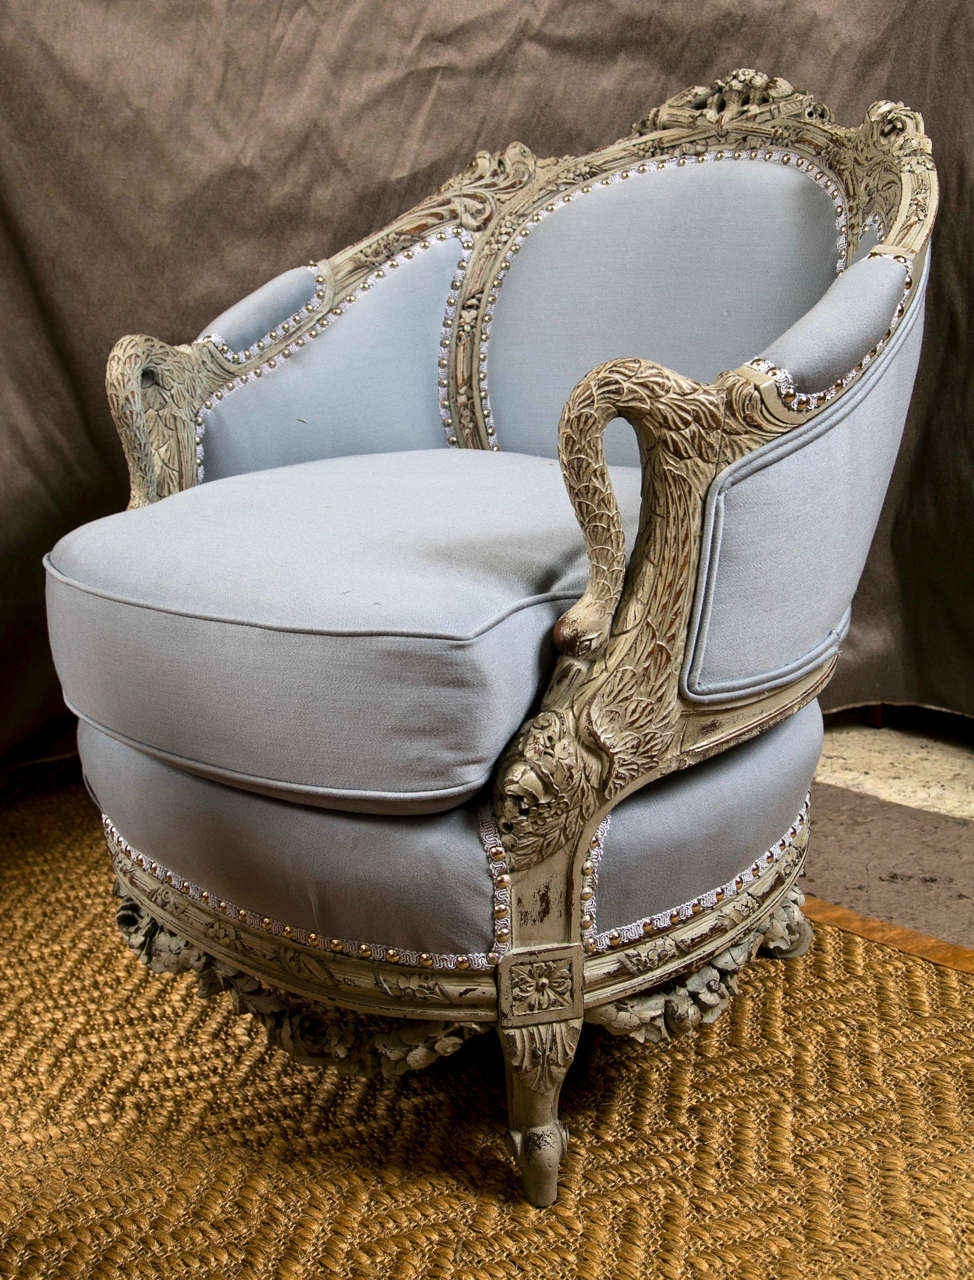 Mahogany Swan Chair Functional Art Images Frompo